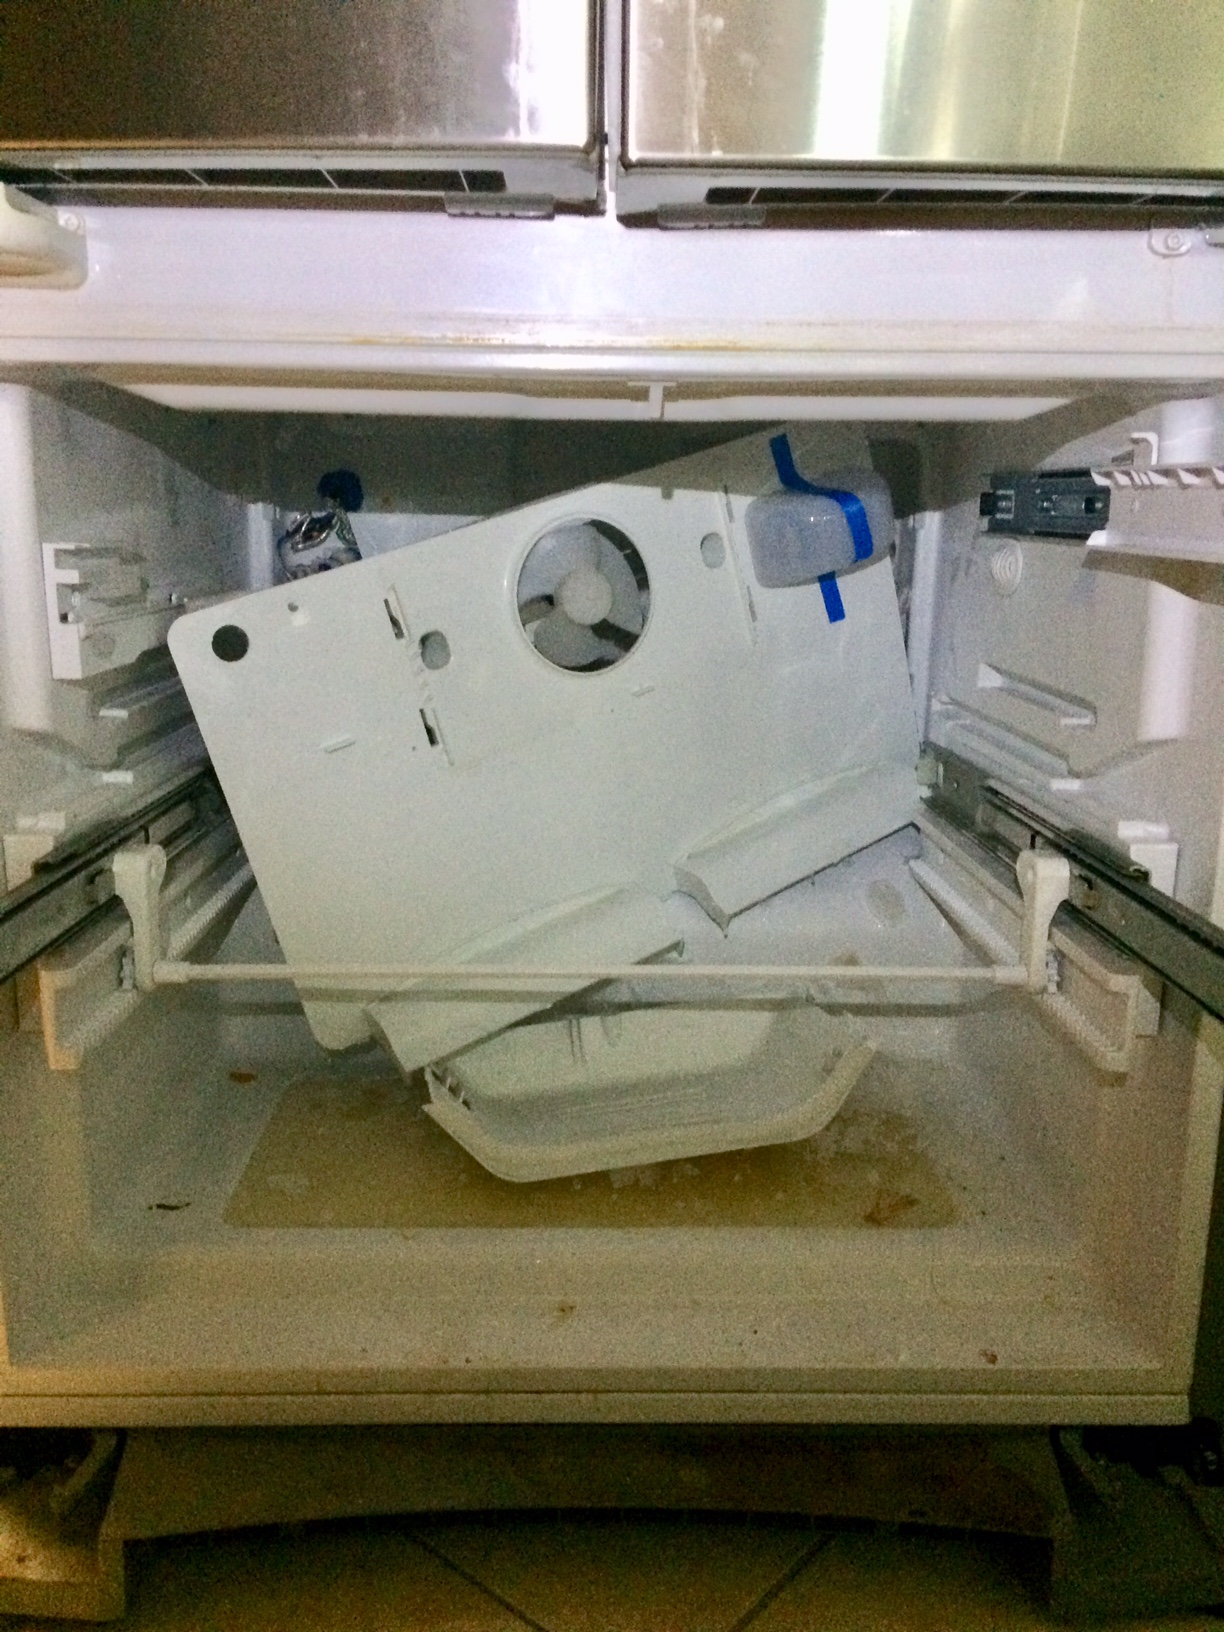 Global Solutions Appliance Repair image 68